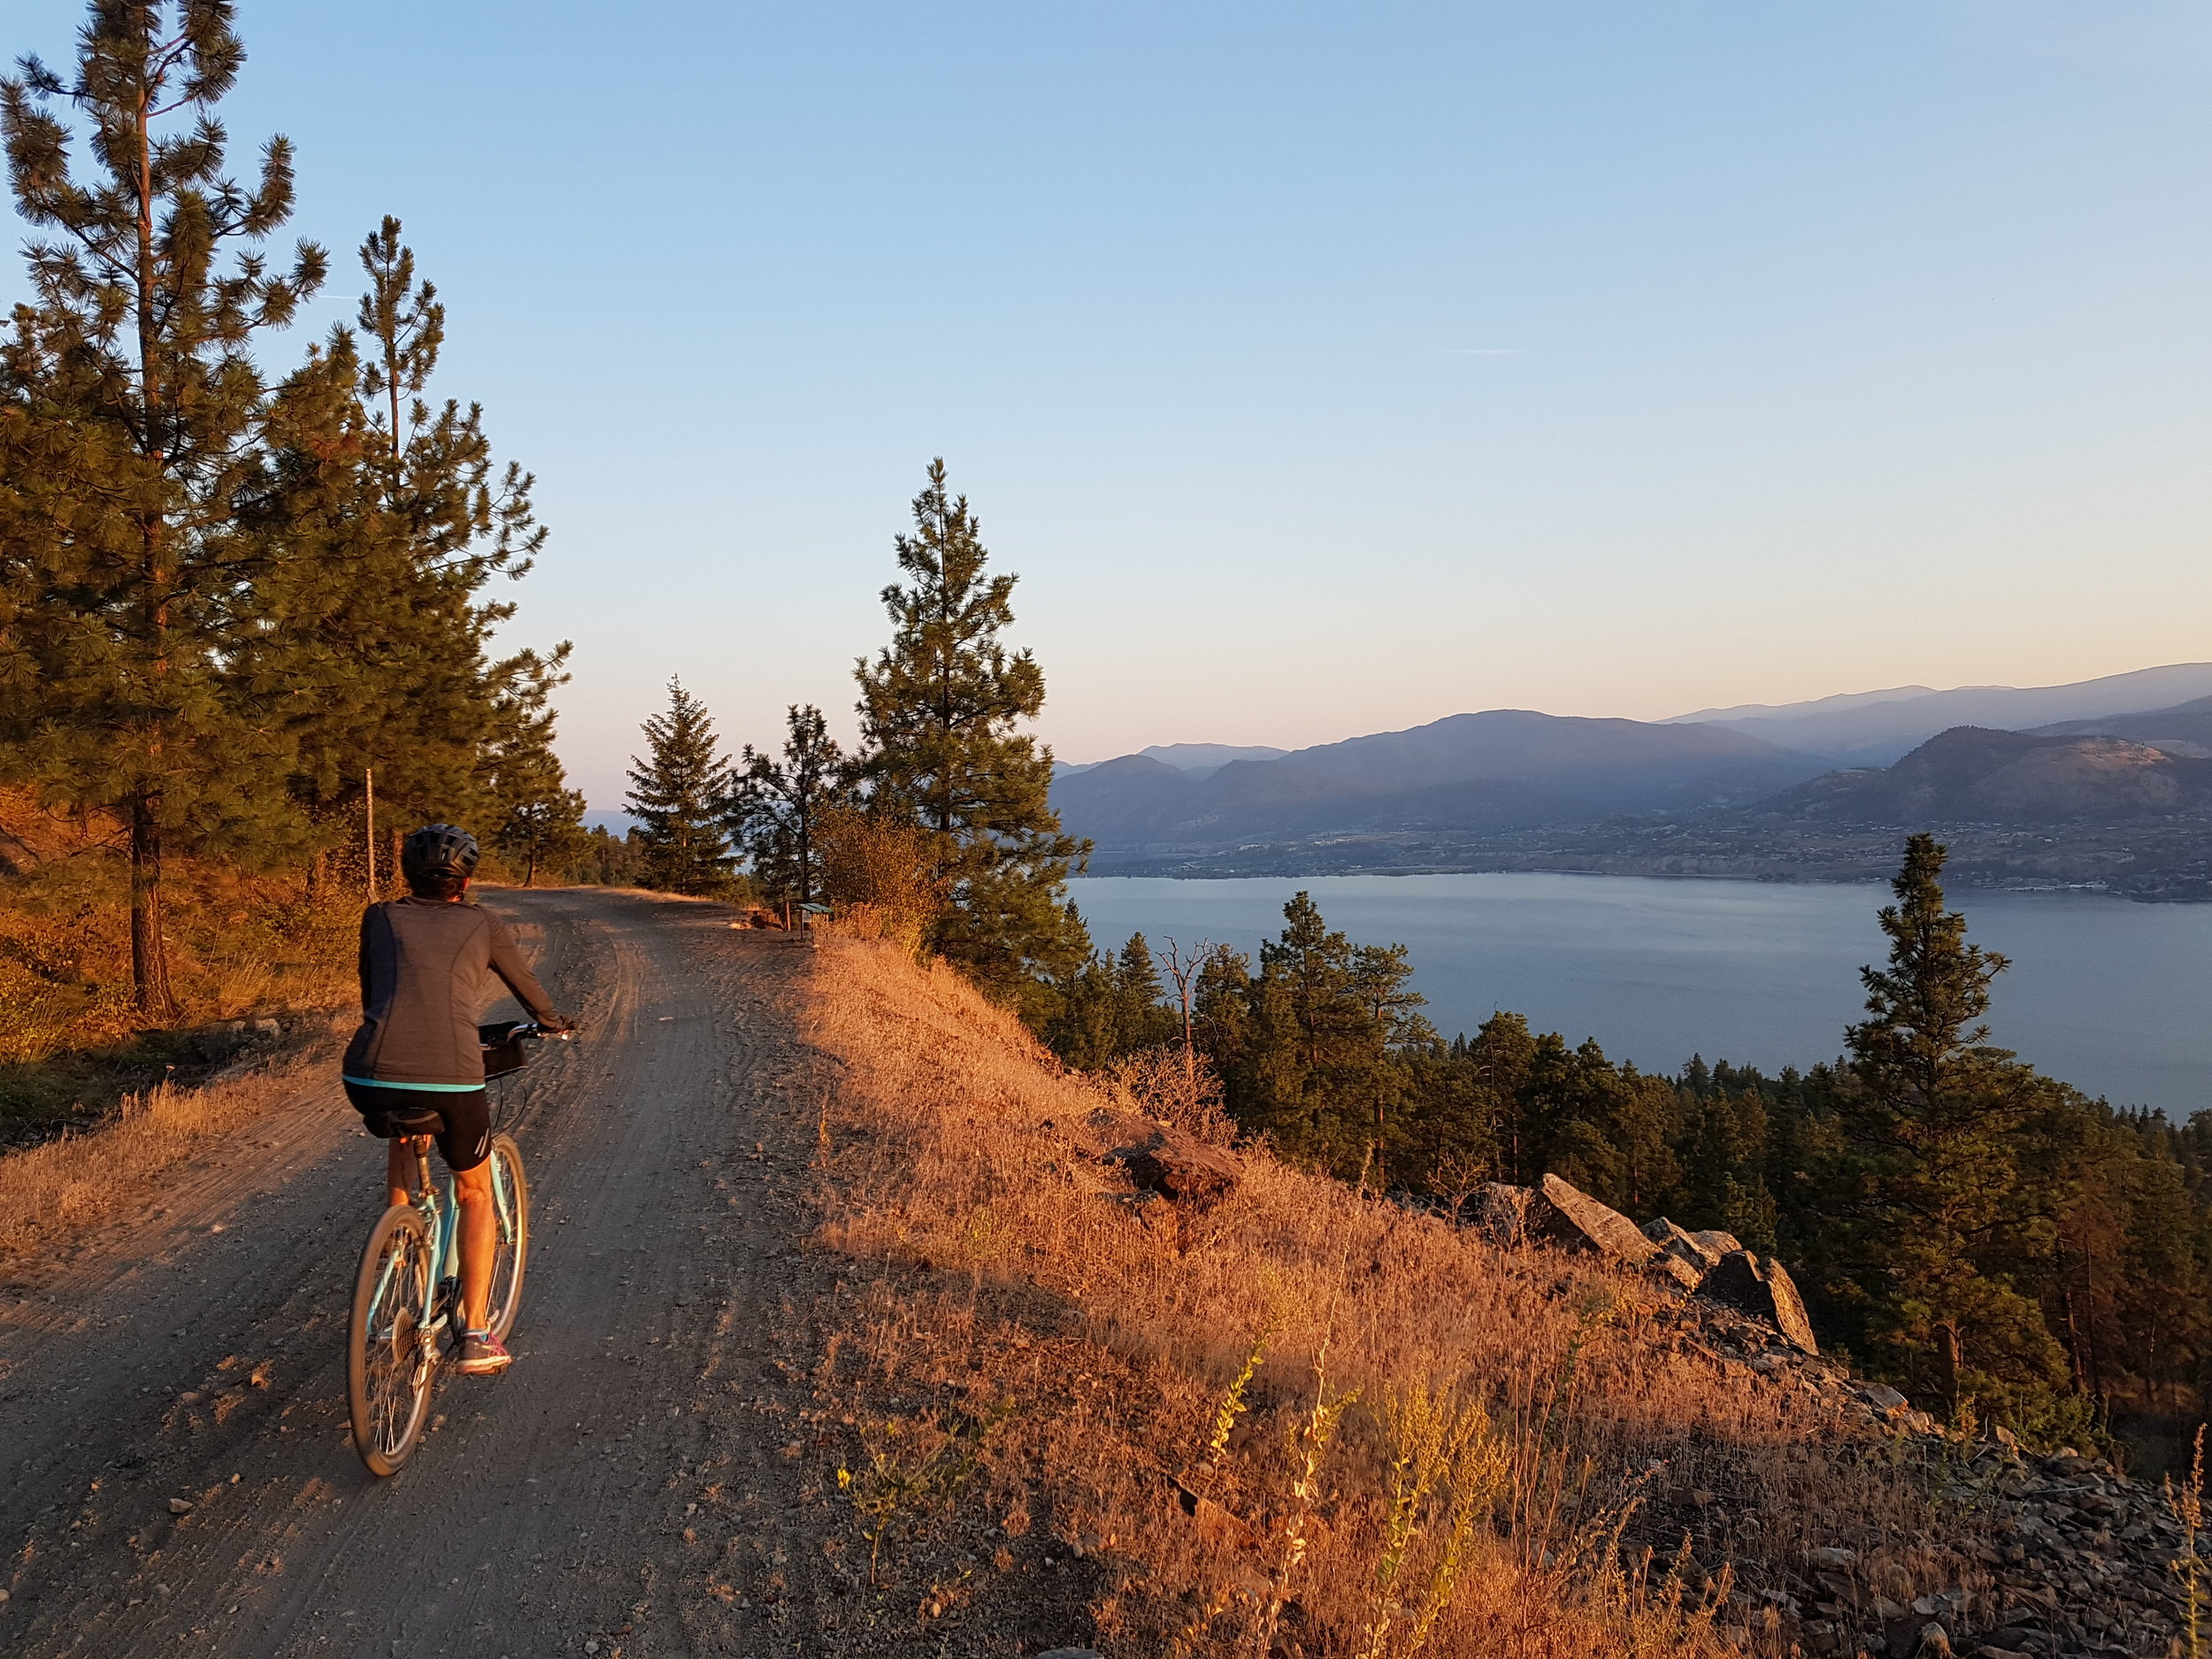 Rolling down the hills next to the Okanagan Lake